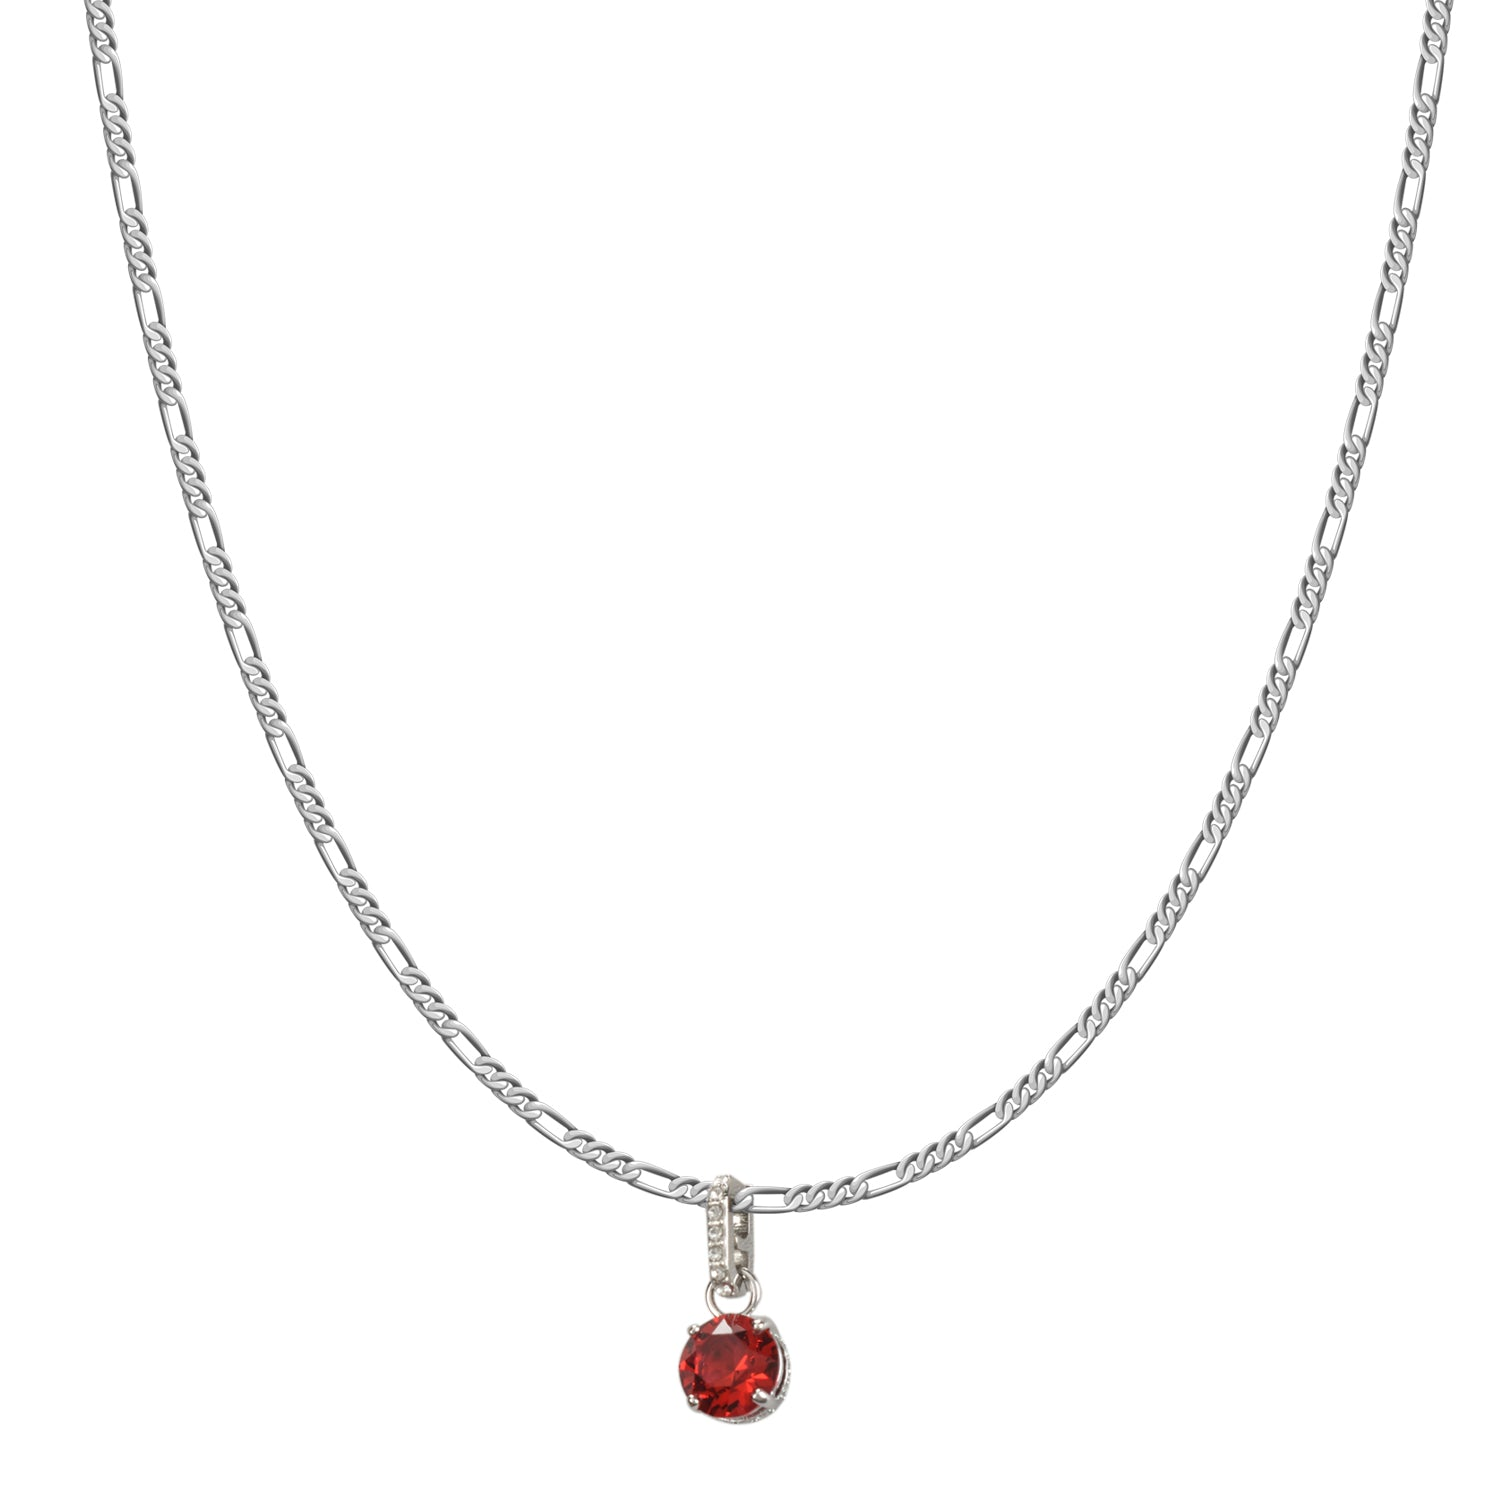 Swarovski Remix Collection Red January Charm In Rhodium Plated | Shop Luxury Swarovski Charm Online